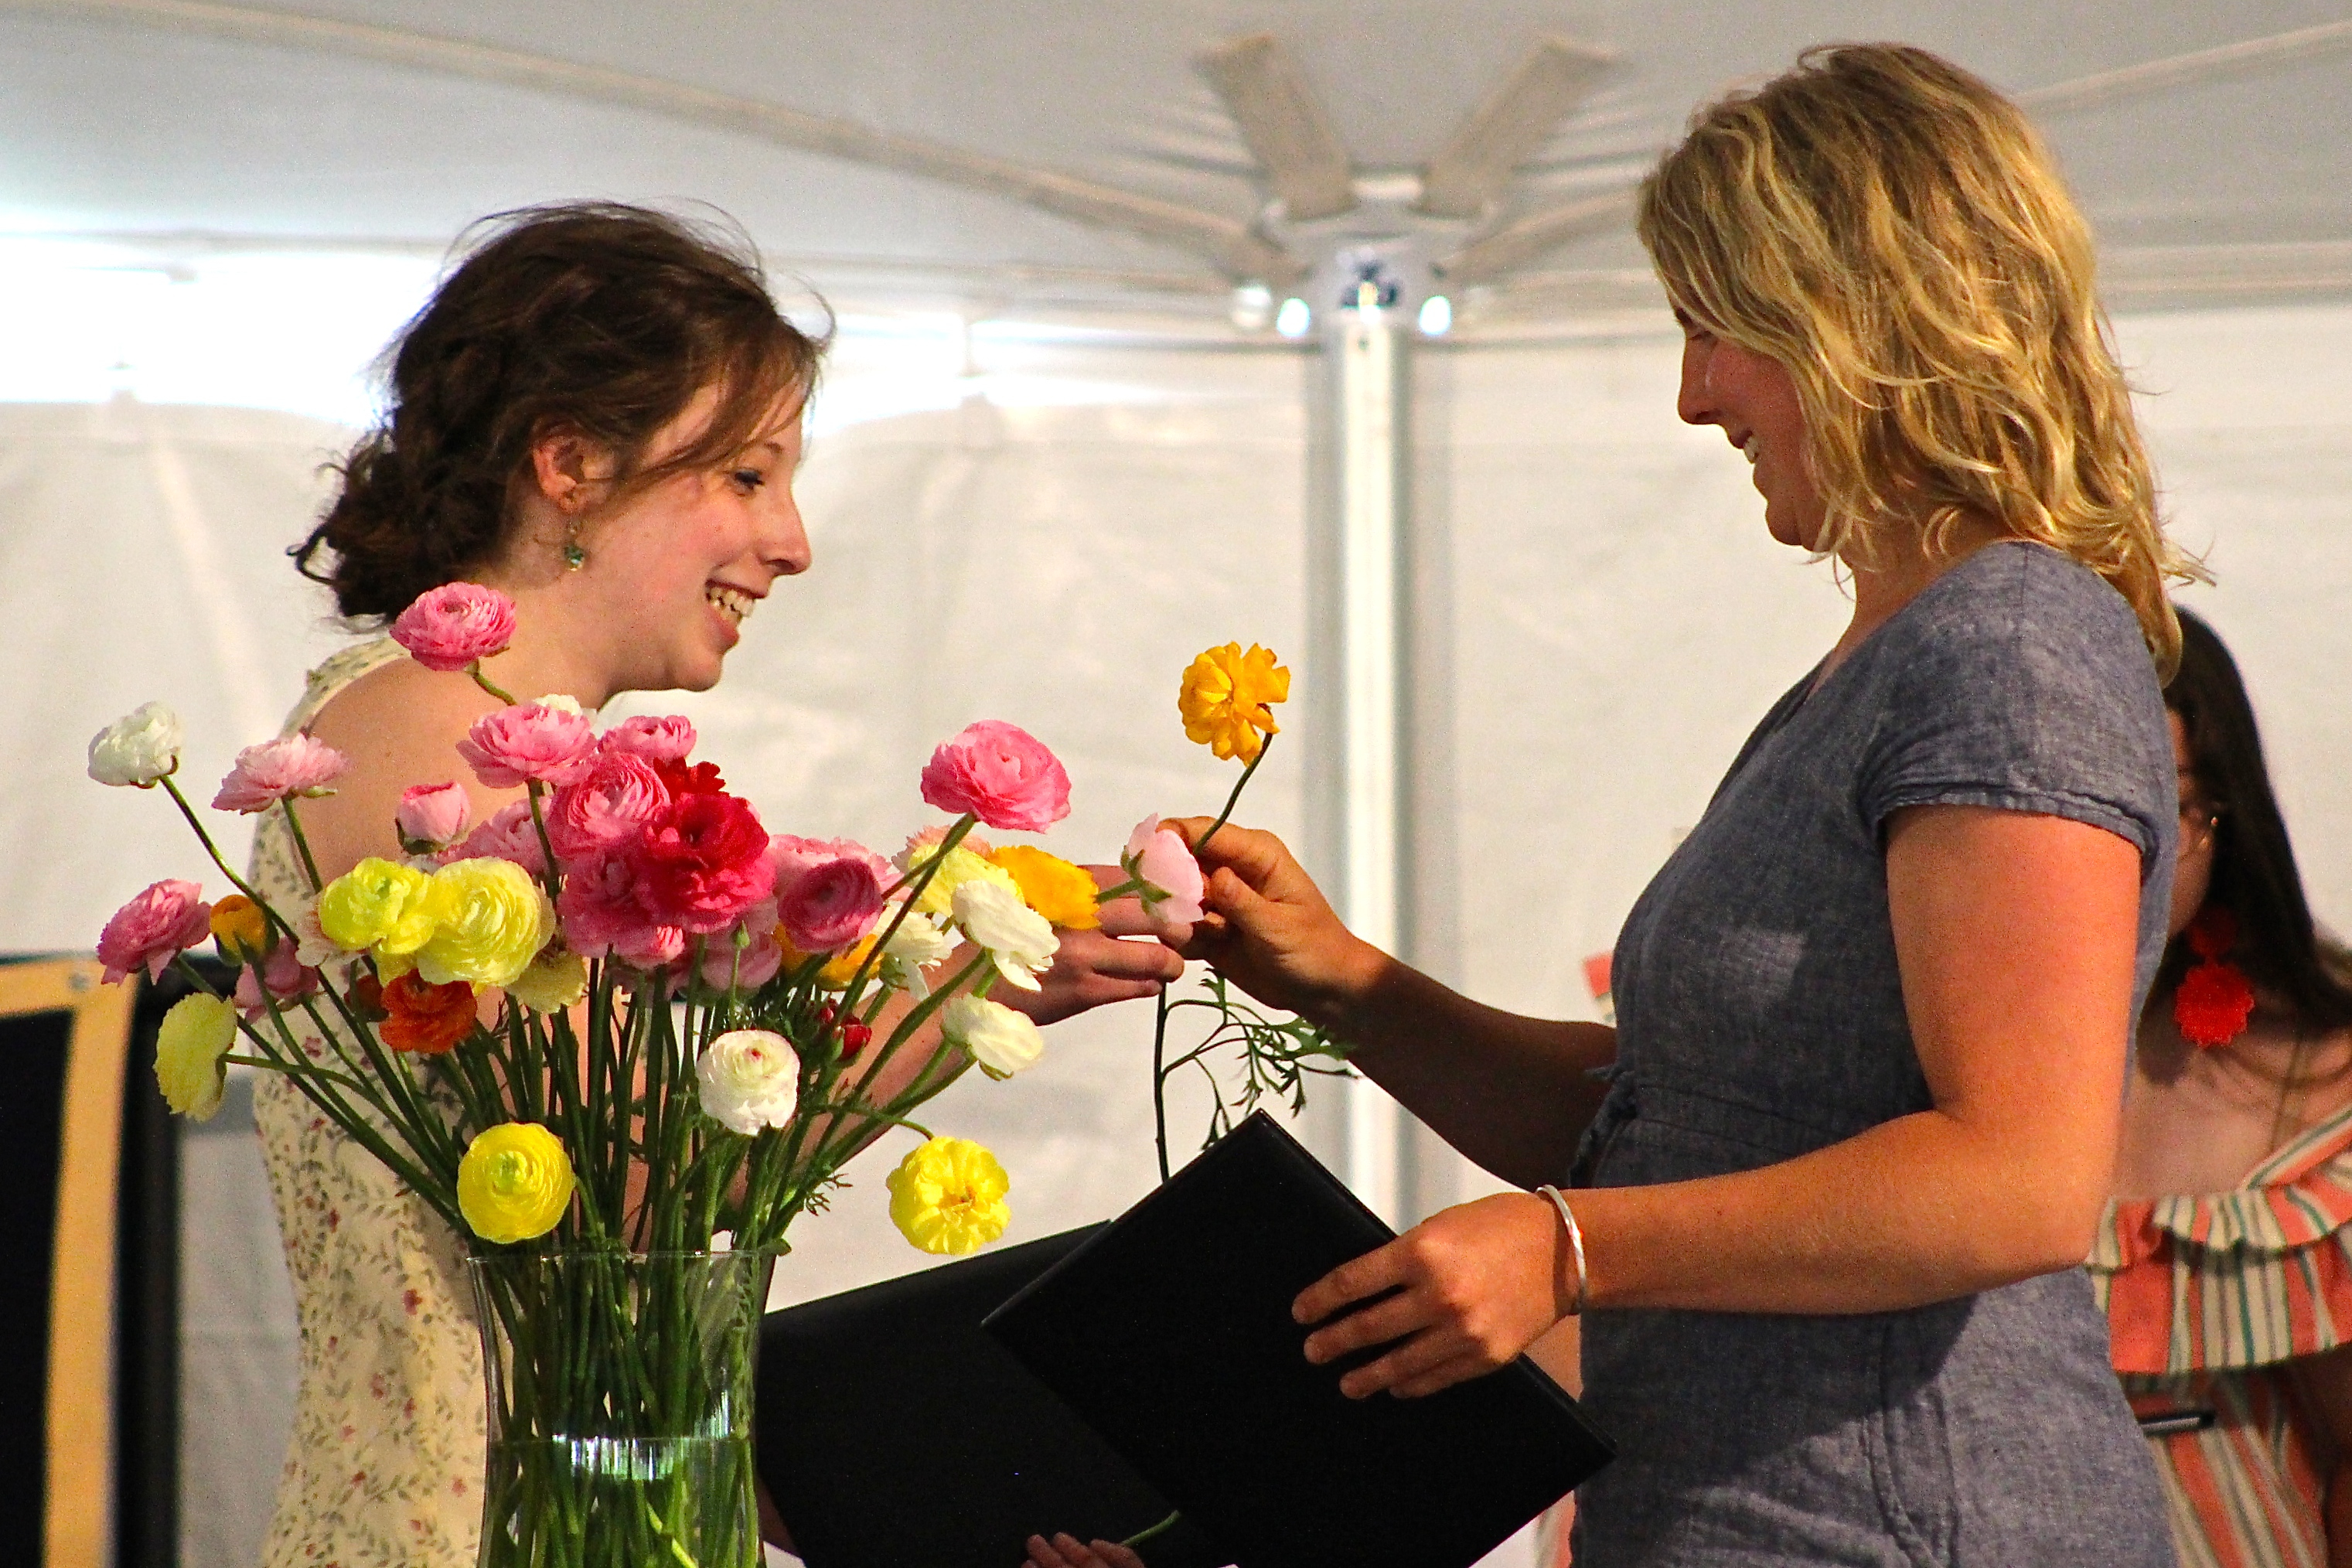 Following a long-standing tradition at College of the Atlantic, graduating students present each other with flowers to symbolize their shared experience and affection for one another. Carolyn Snell '06 provided the Ranunculus from her family farm in Buxton.